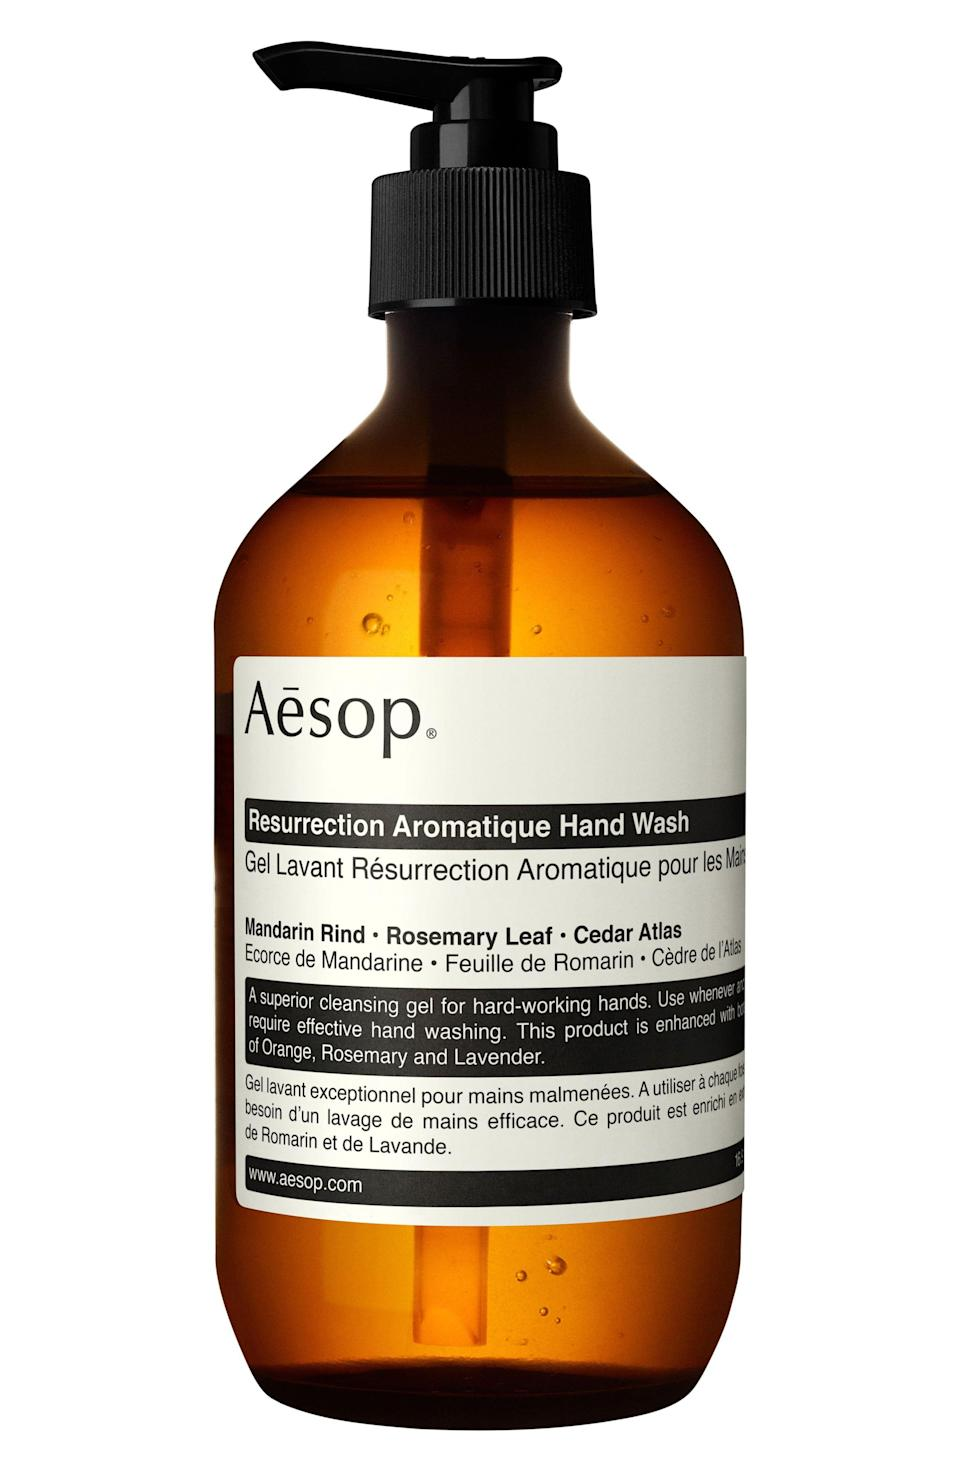 """<p><strong>AESOP</strong></p><p>nordstrom.com</p><p><strong>$39.00</strong></p><p><a href=""""https://go.redirectingat.com?id=74968X1596630&url=https%3A%2F%2Fwww.nordstrom.com%2Fs%2Faesop-resurrection-aromatique-hand-wash%2F4365918&sref=https%3A%2F%2Fwww.harpersbazaar.com%2Fbeauty%2Fskin-care%2Fg33545040%2Fbest-hand-soap%2F"""" rel=""""nofollow noopener"""" target=""""_blank"""" data-ylk=""""slk:Shop Now"""" class=""""link rapid-noclick-resp"""">Shop Now</a></p><p>This cleansing gel smells fresh and sophisticated thanks to rosemary leaf, orange, and cedar. It's the kind you'll want to keep by your kitchen sink and buy over and over again.</p>"""